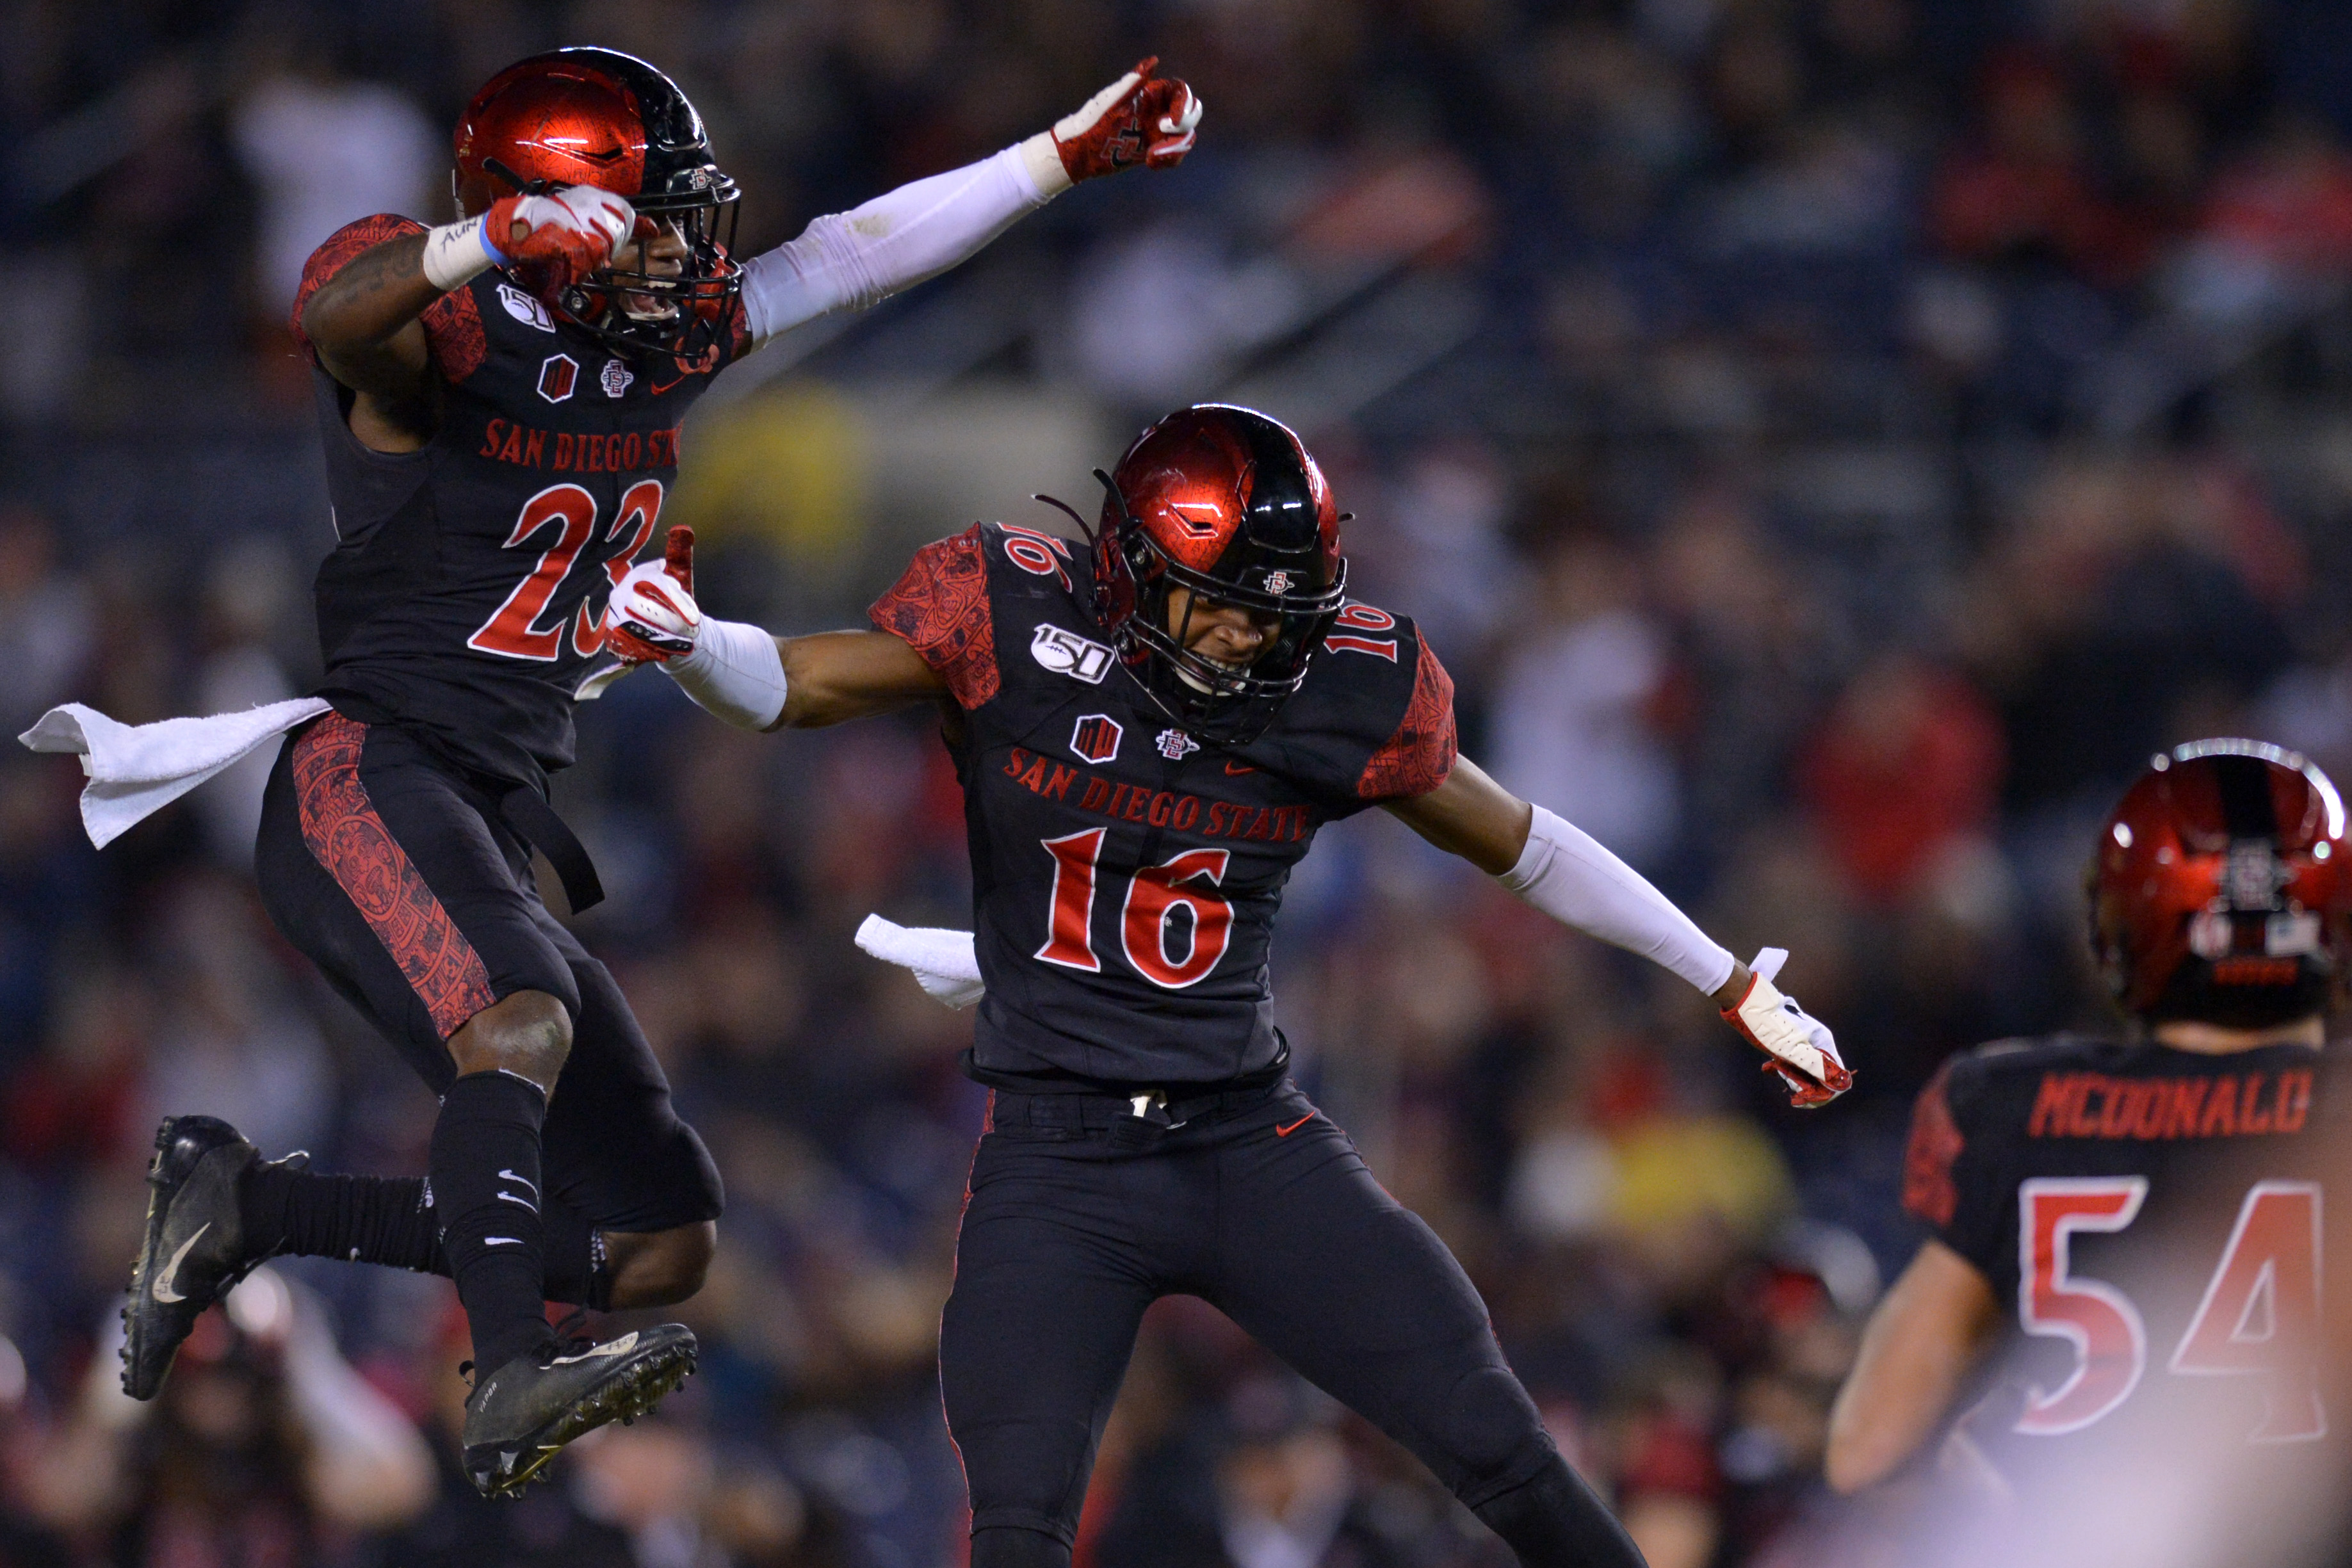 San Diego State cornerback Luq Barcoo celebrates with cornerback Darren Hall during the fourth quarter after an interception against Fresno State.